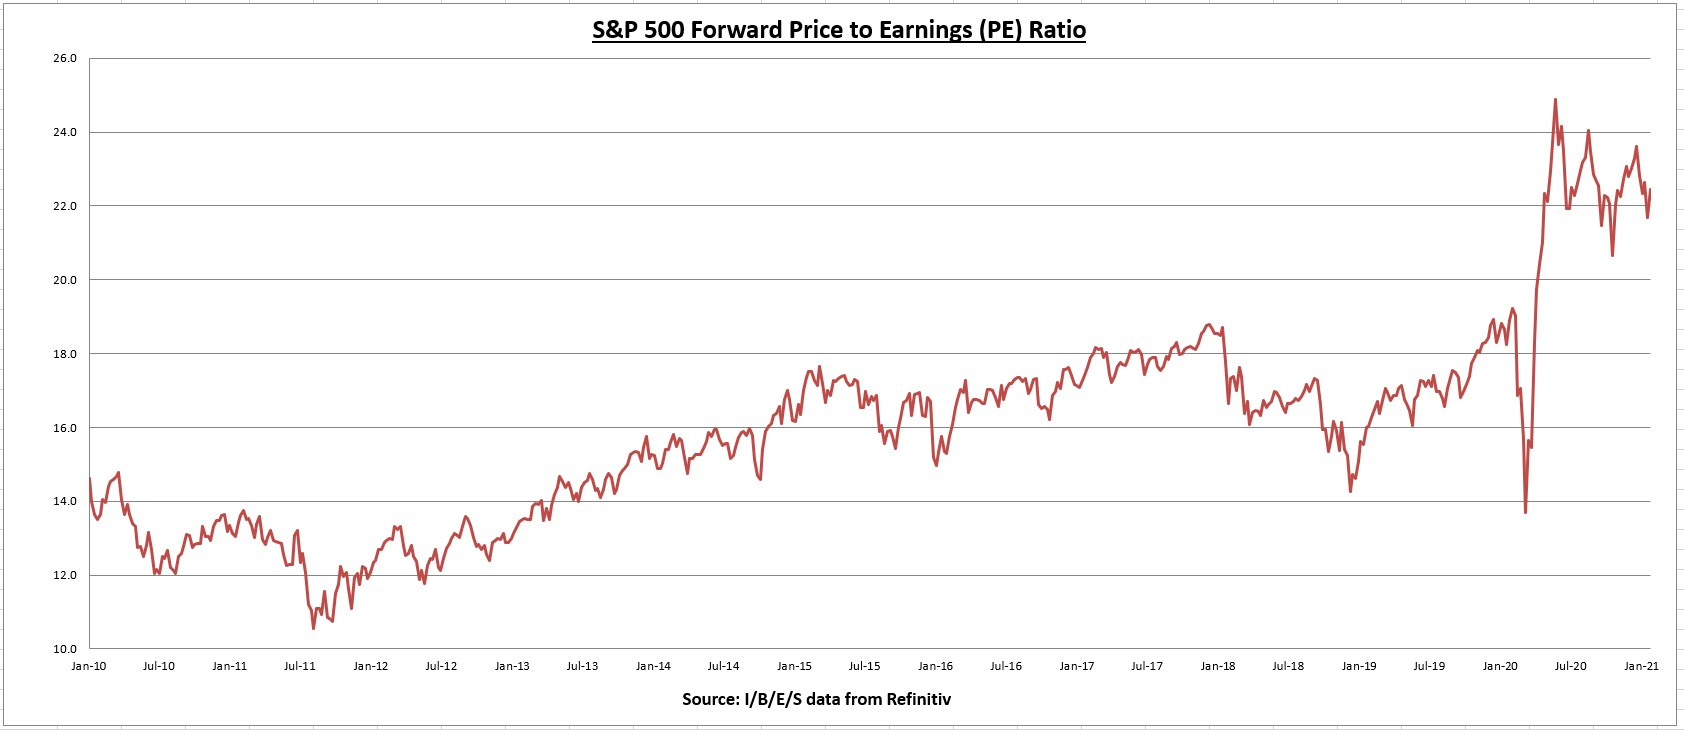 S&P 500 Forward Price To Earnings PE Ratio